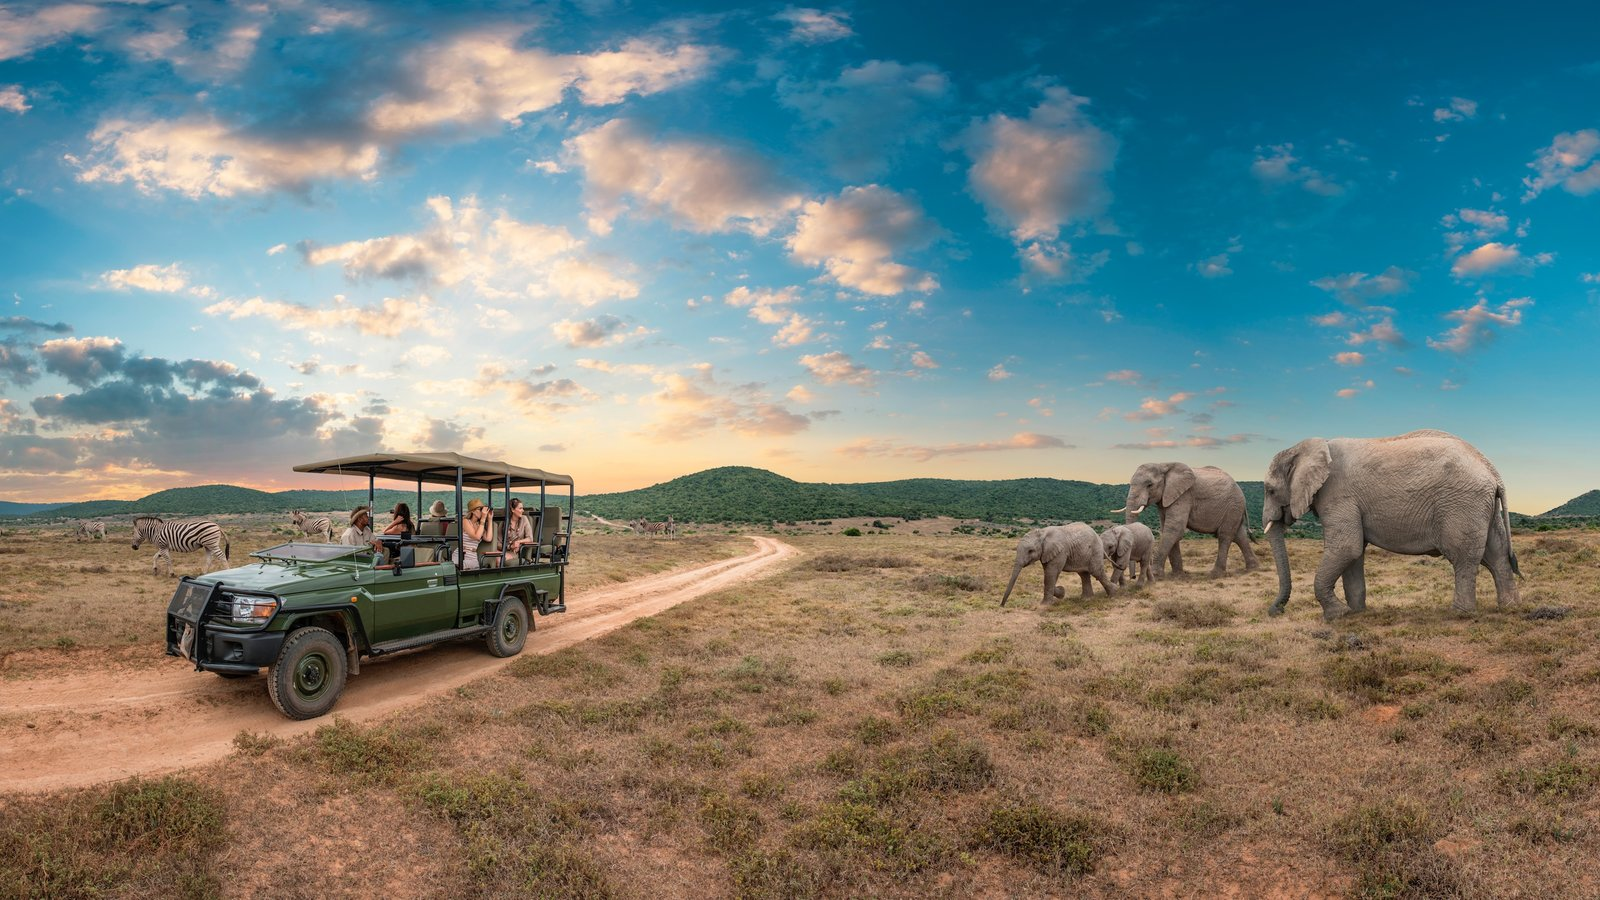 Johannesburg - Gauteng which includes touring, land animals and tranquil scenes